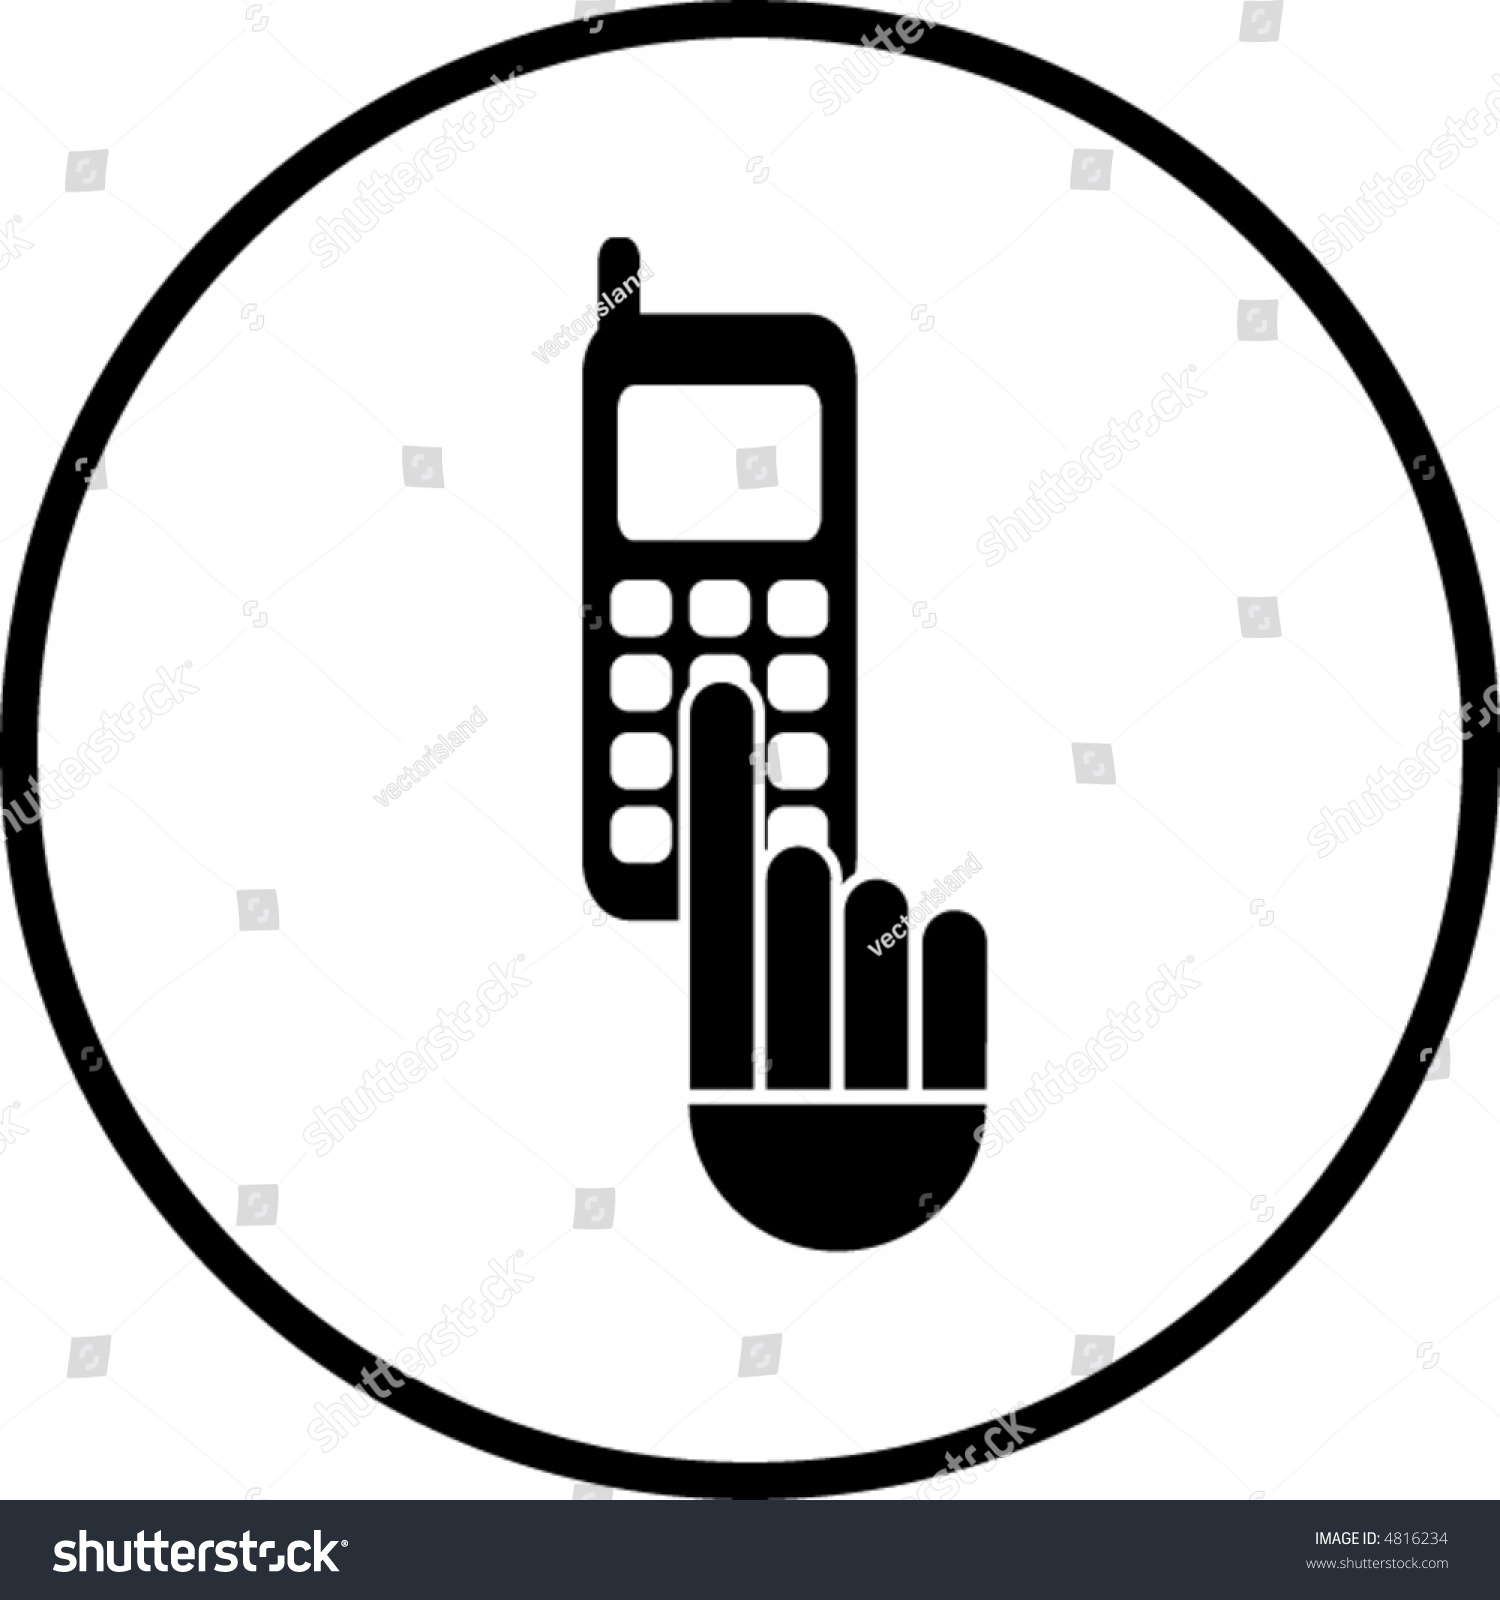 Cell Phone Dialing Symbol Stock Vector 4816234 - Shutterstock